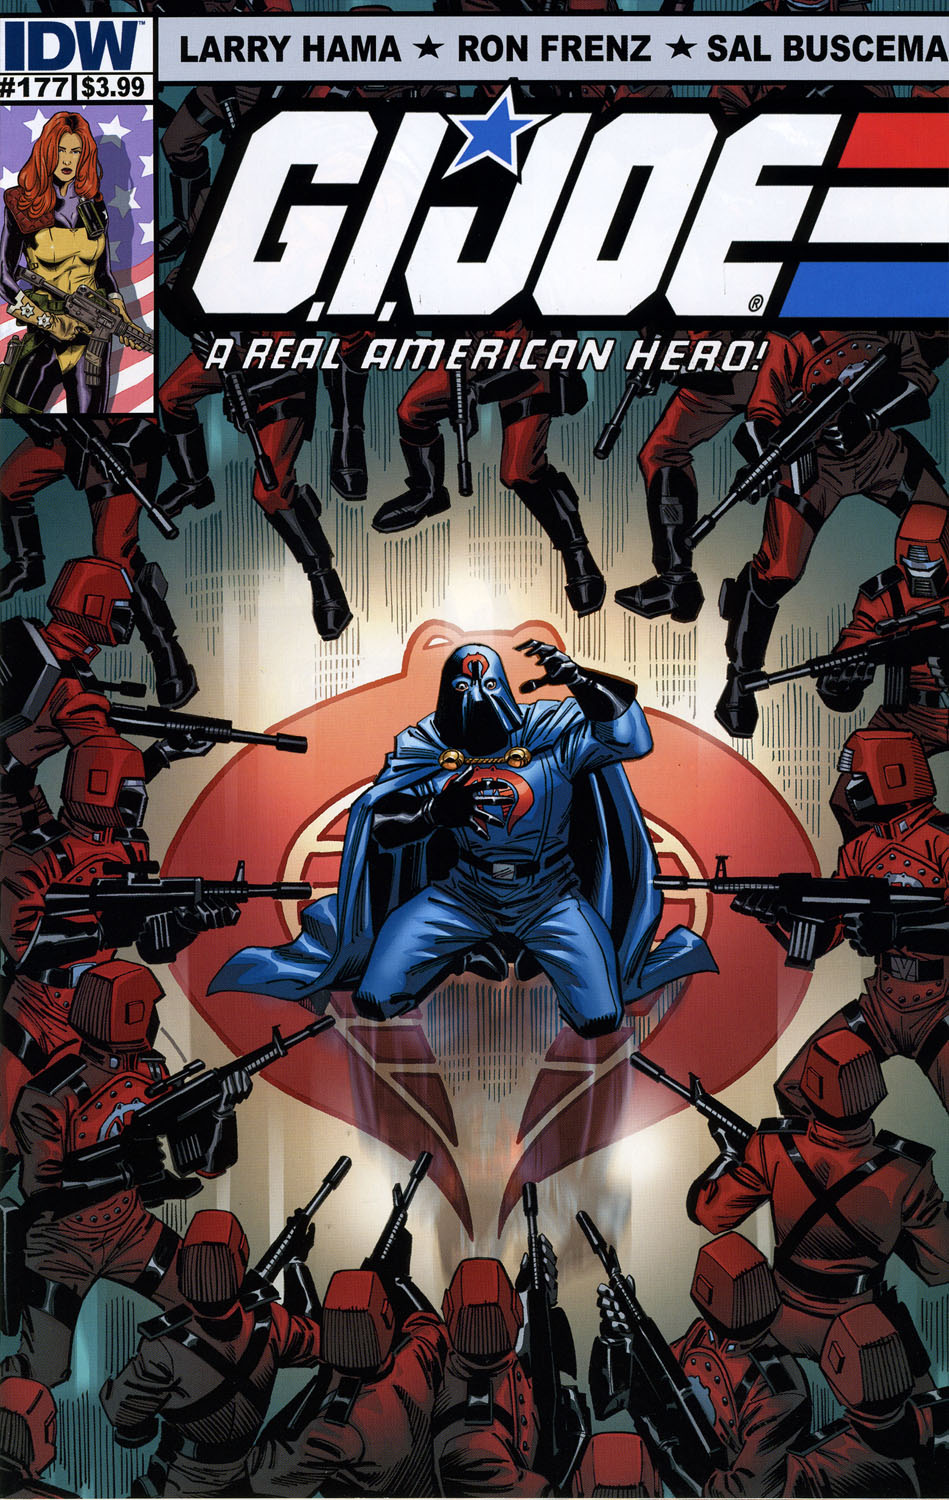 G.I. Joe_ A Real American Hero (1982) #177, cover penciled by Ron Frenz & inked by Sal Buscema.